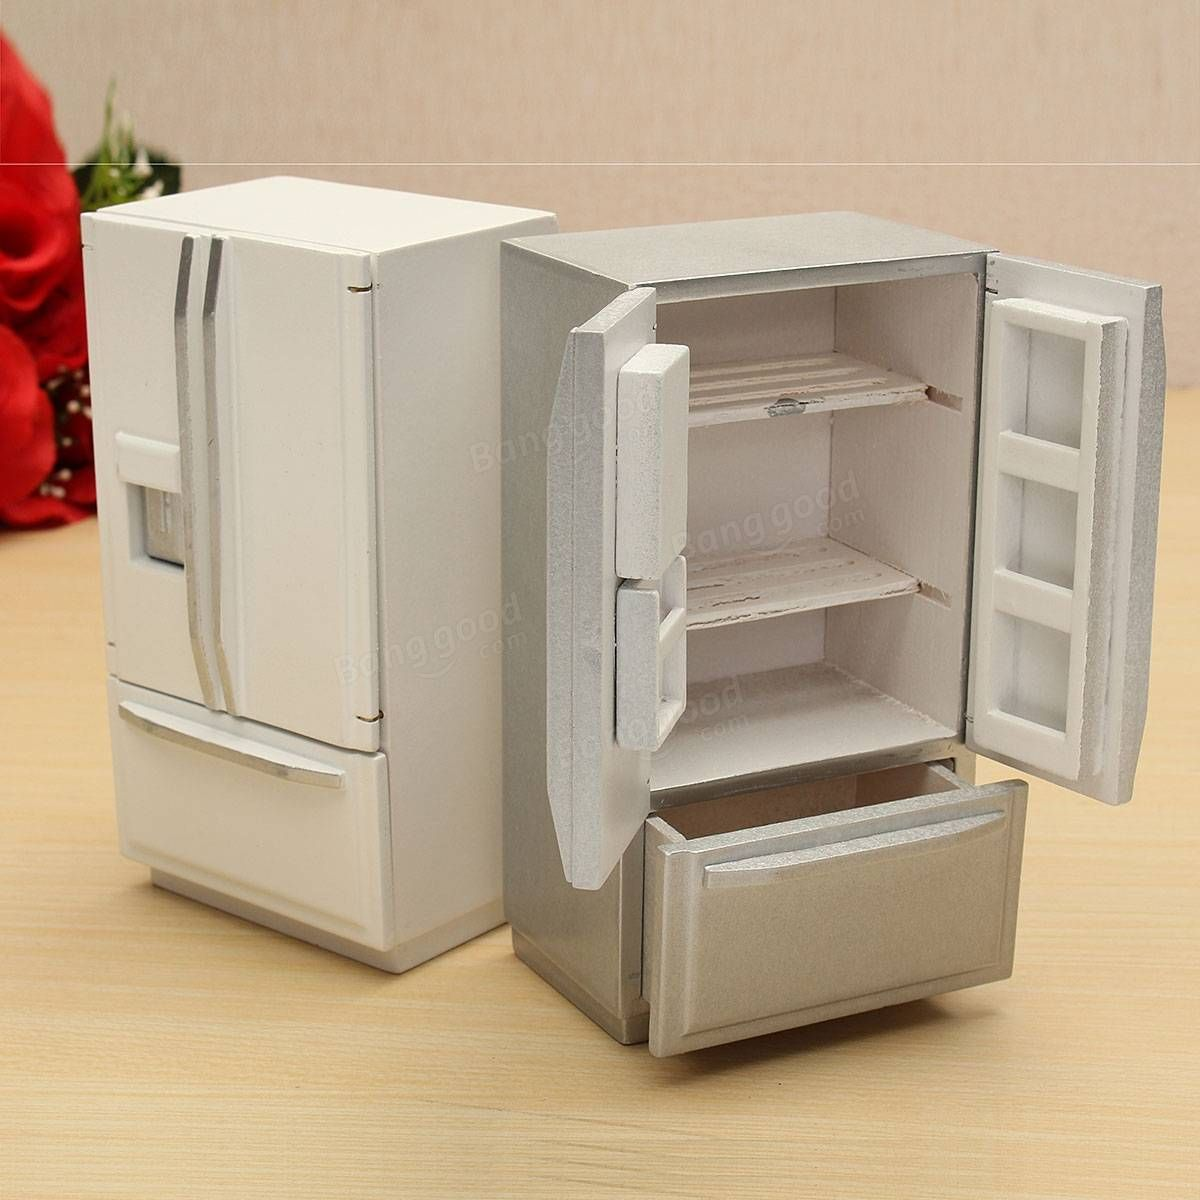 112 Wooden Dollhouse Miniature Furniture Kitchen Fridge